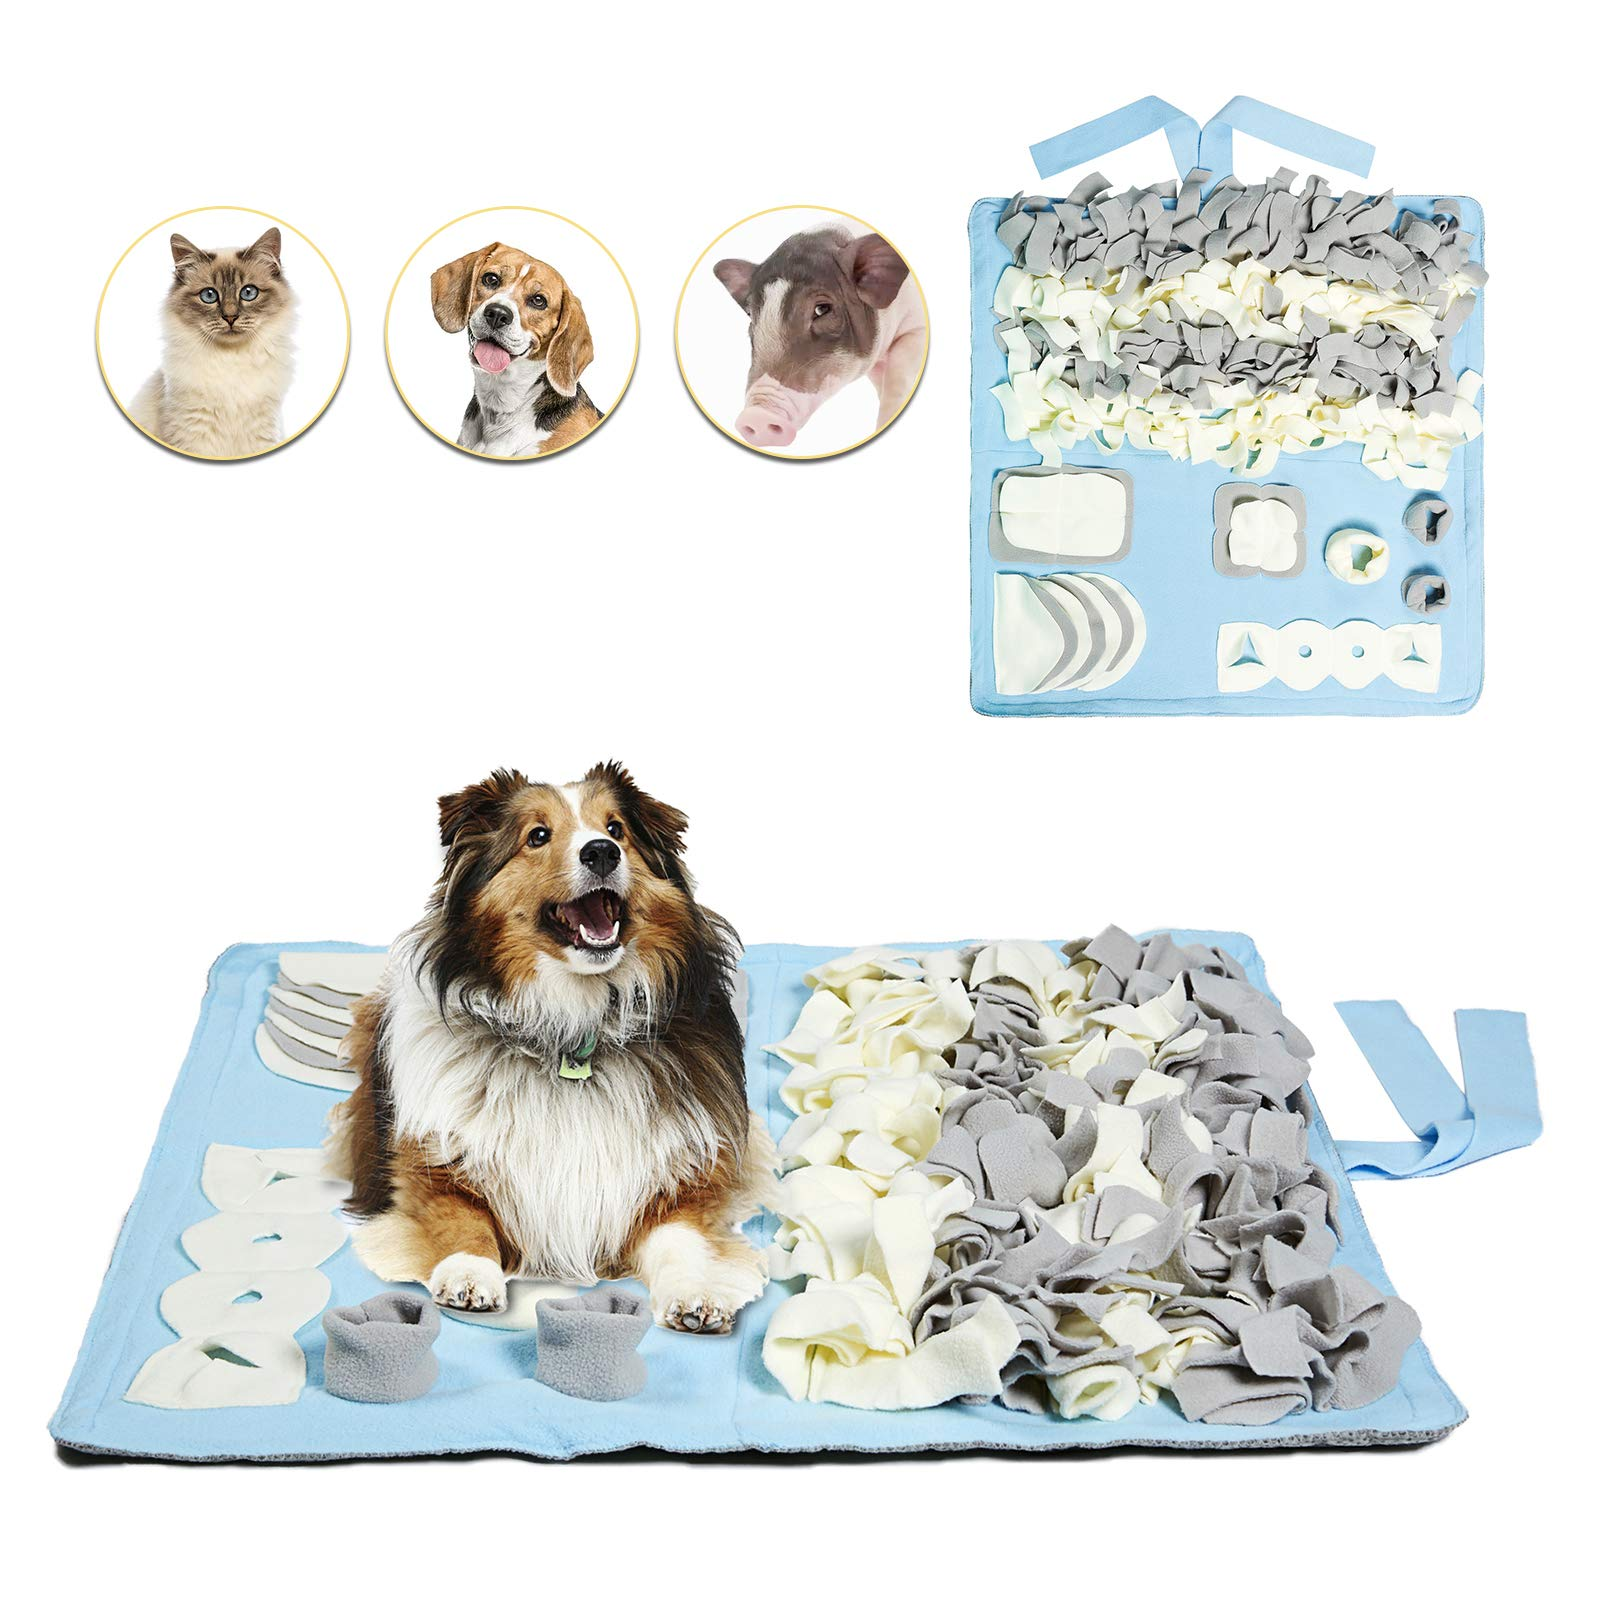 Petvins Dog Snuffle Mat Treat Blanket, Pet Puzzle Activity Mat for Stress Release, Nose Work Mat for Slow Feeding and Foraging Training Blue by Petvins